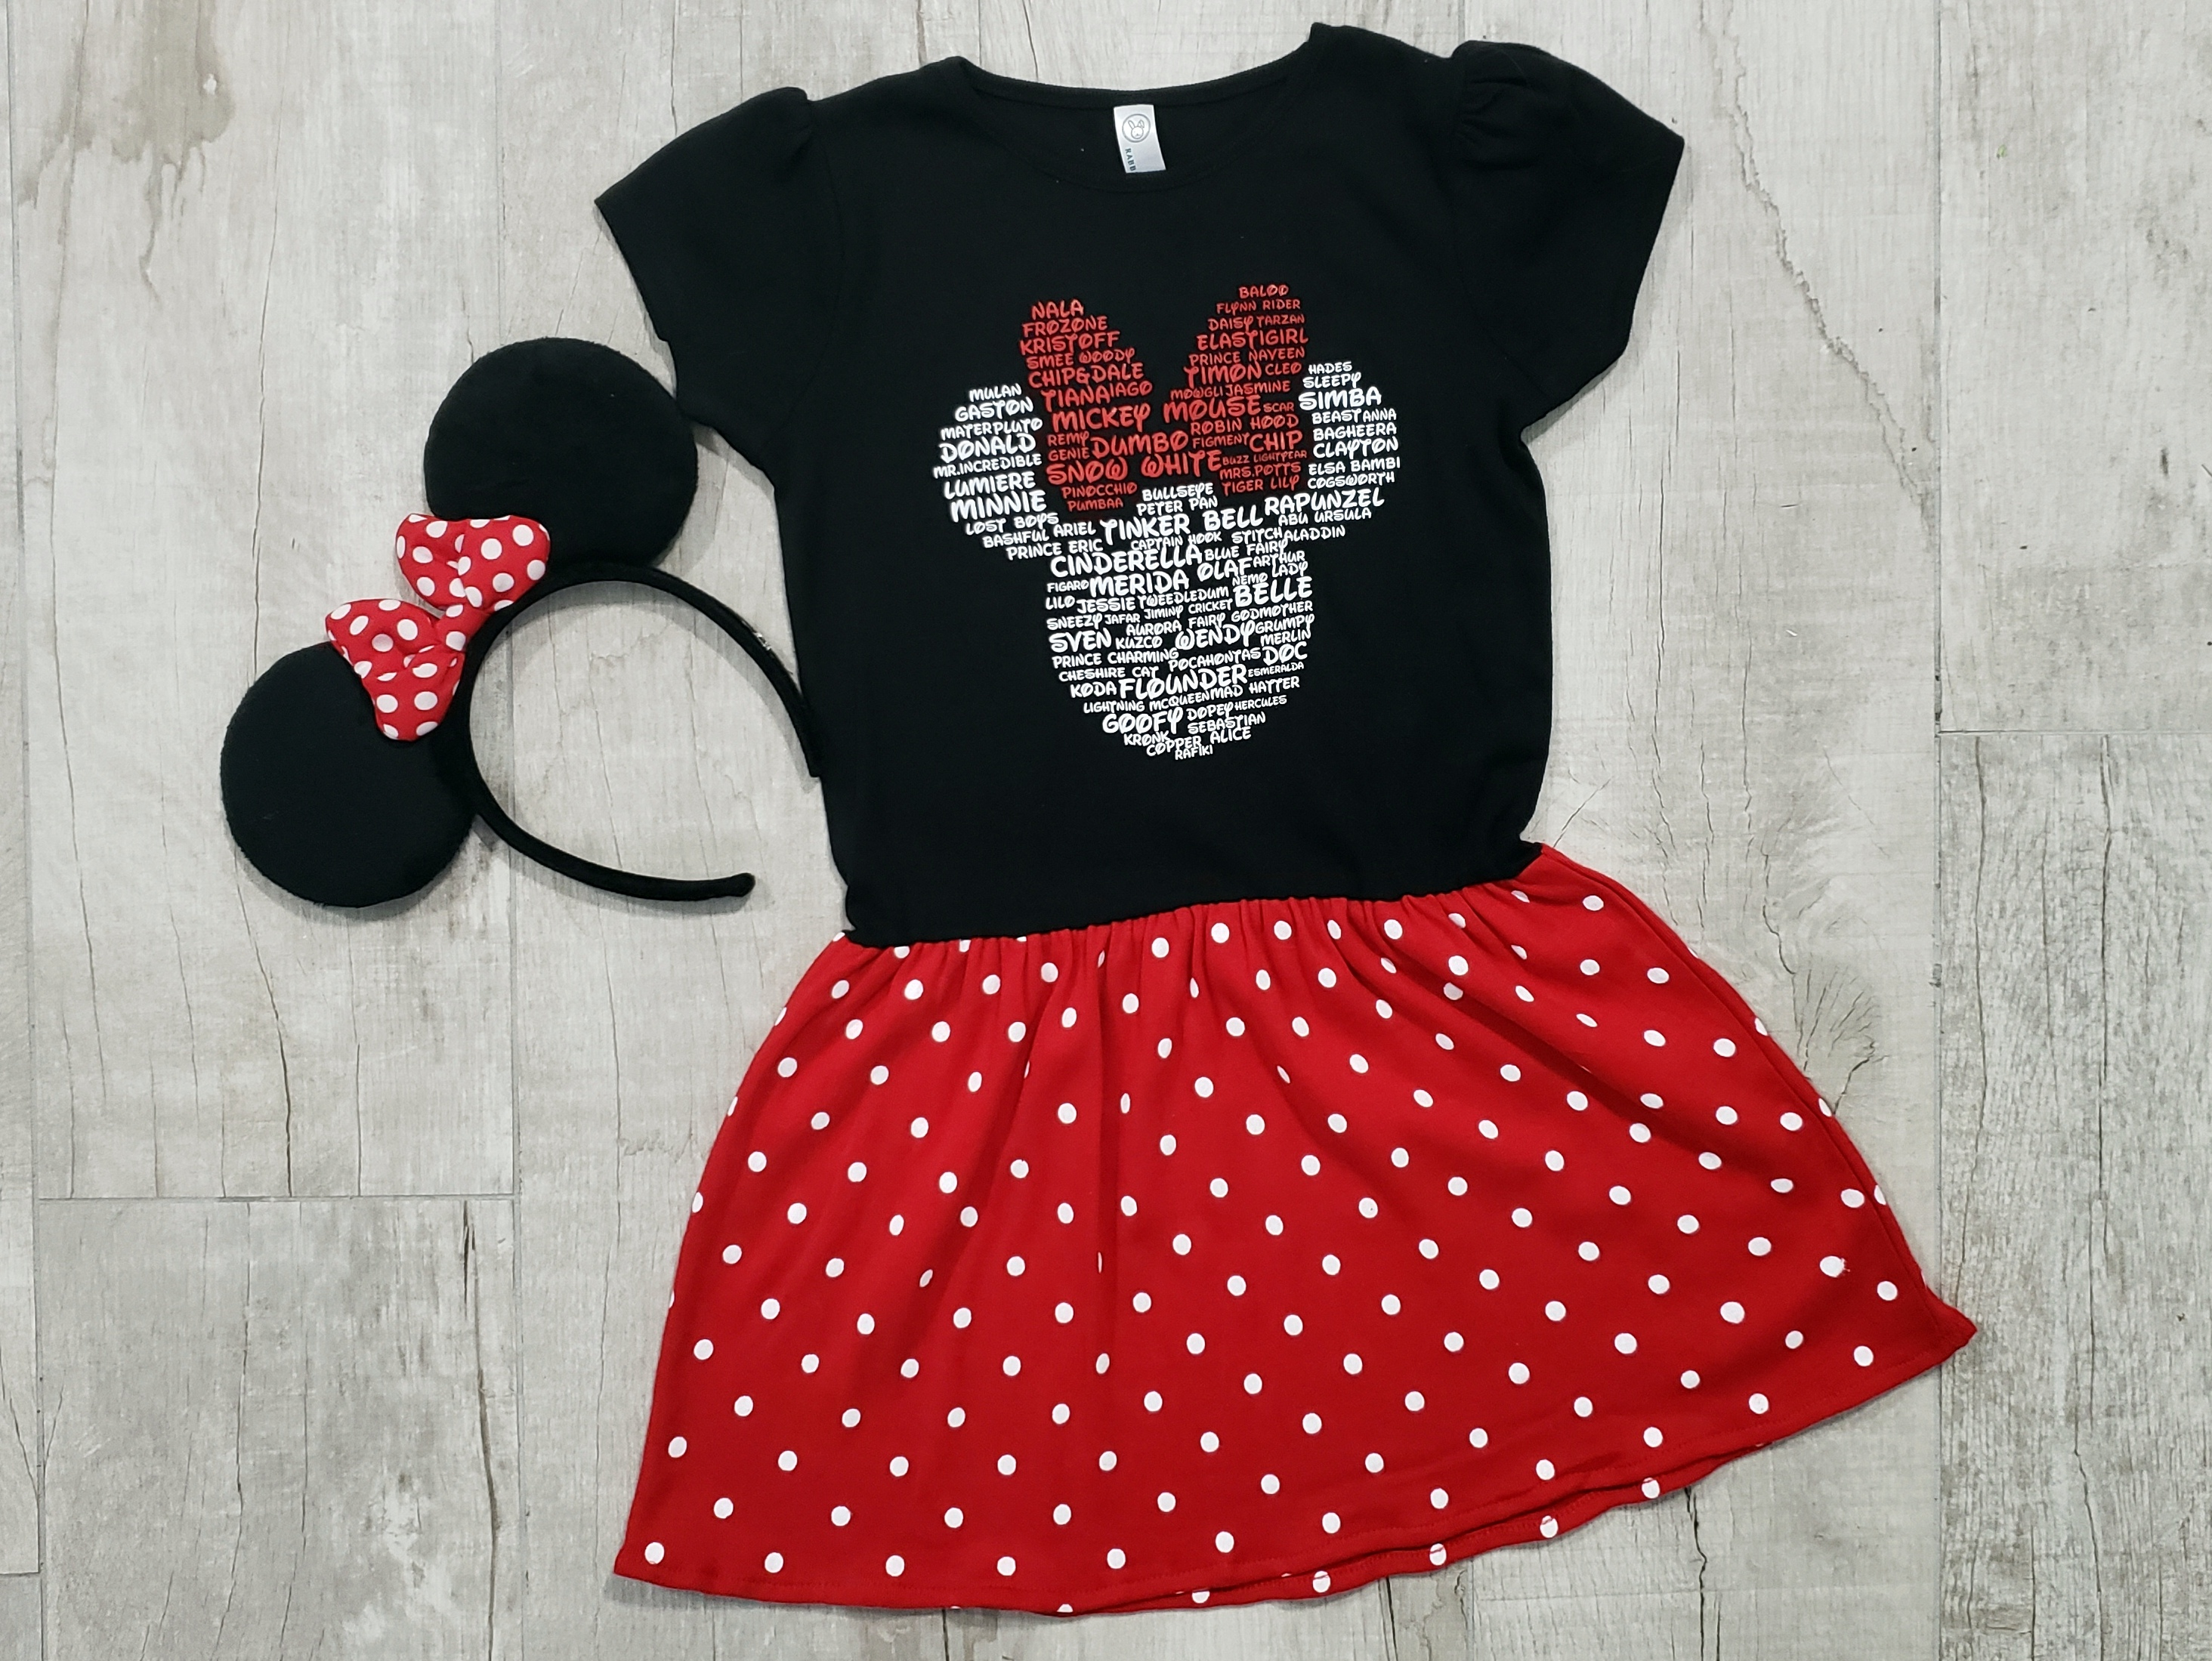 4d2cd9bac4c Minnie Polka Dot Bow Toddler Infant Dress - Enchanted By Design